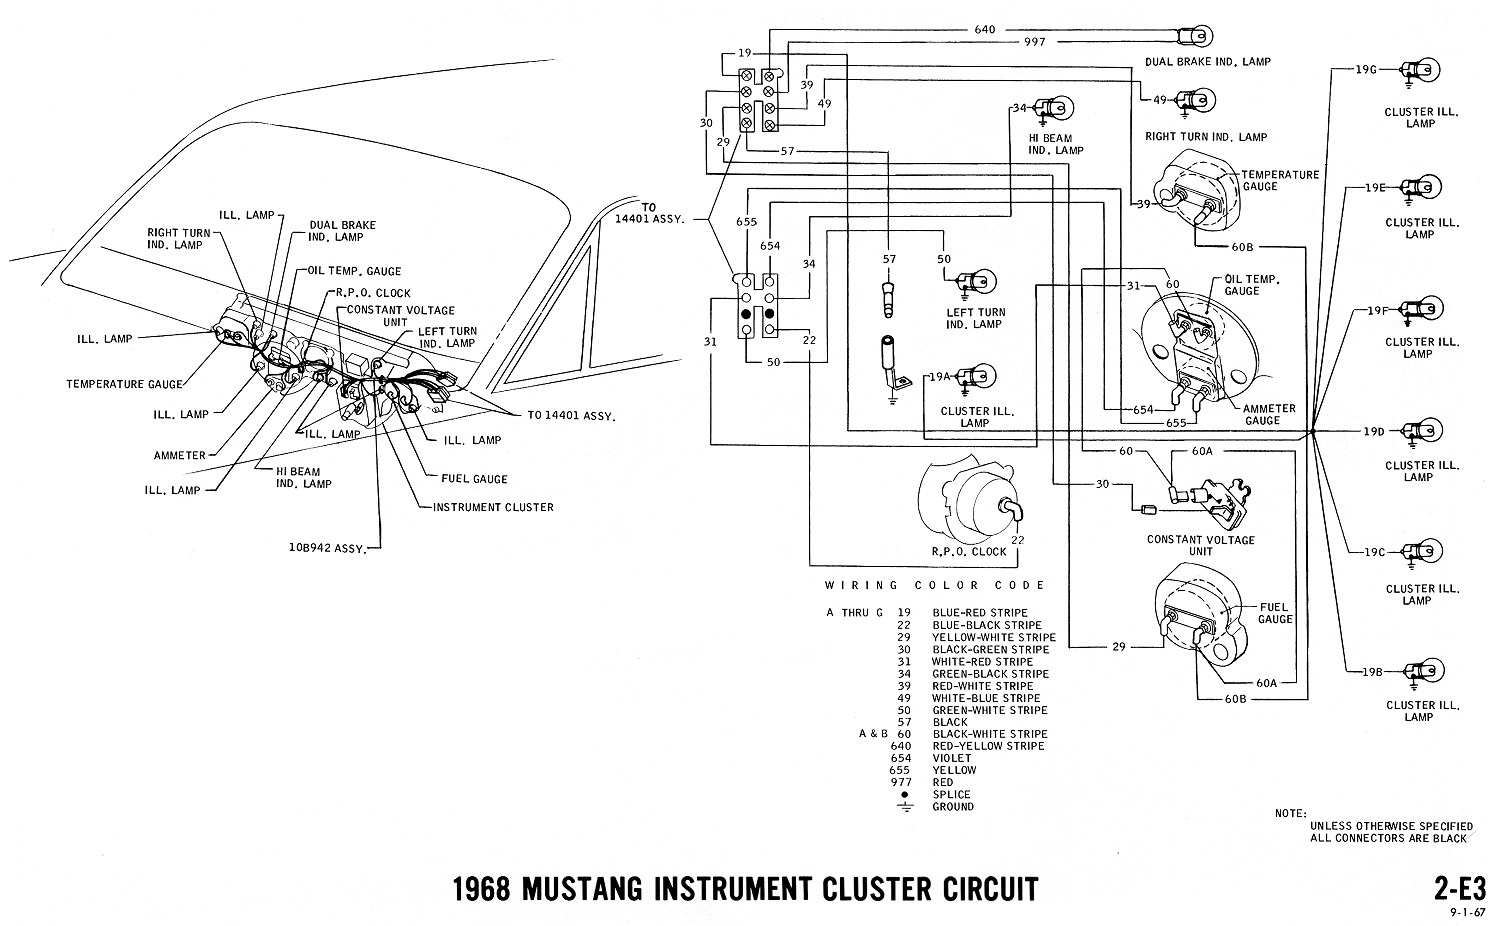 1968 mustang wiring diagram instruments 1970 mustang wiring diagram pdf 1967 mustang wiring diagram pdf 1968 Chevy C10 Wiring-Diagram at fashall.co